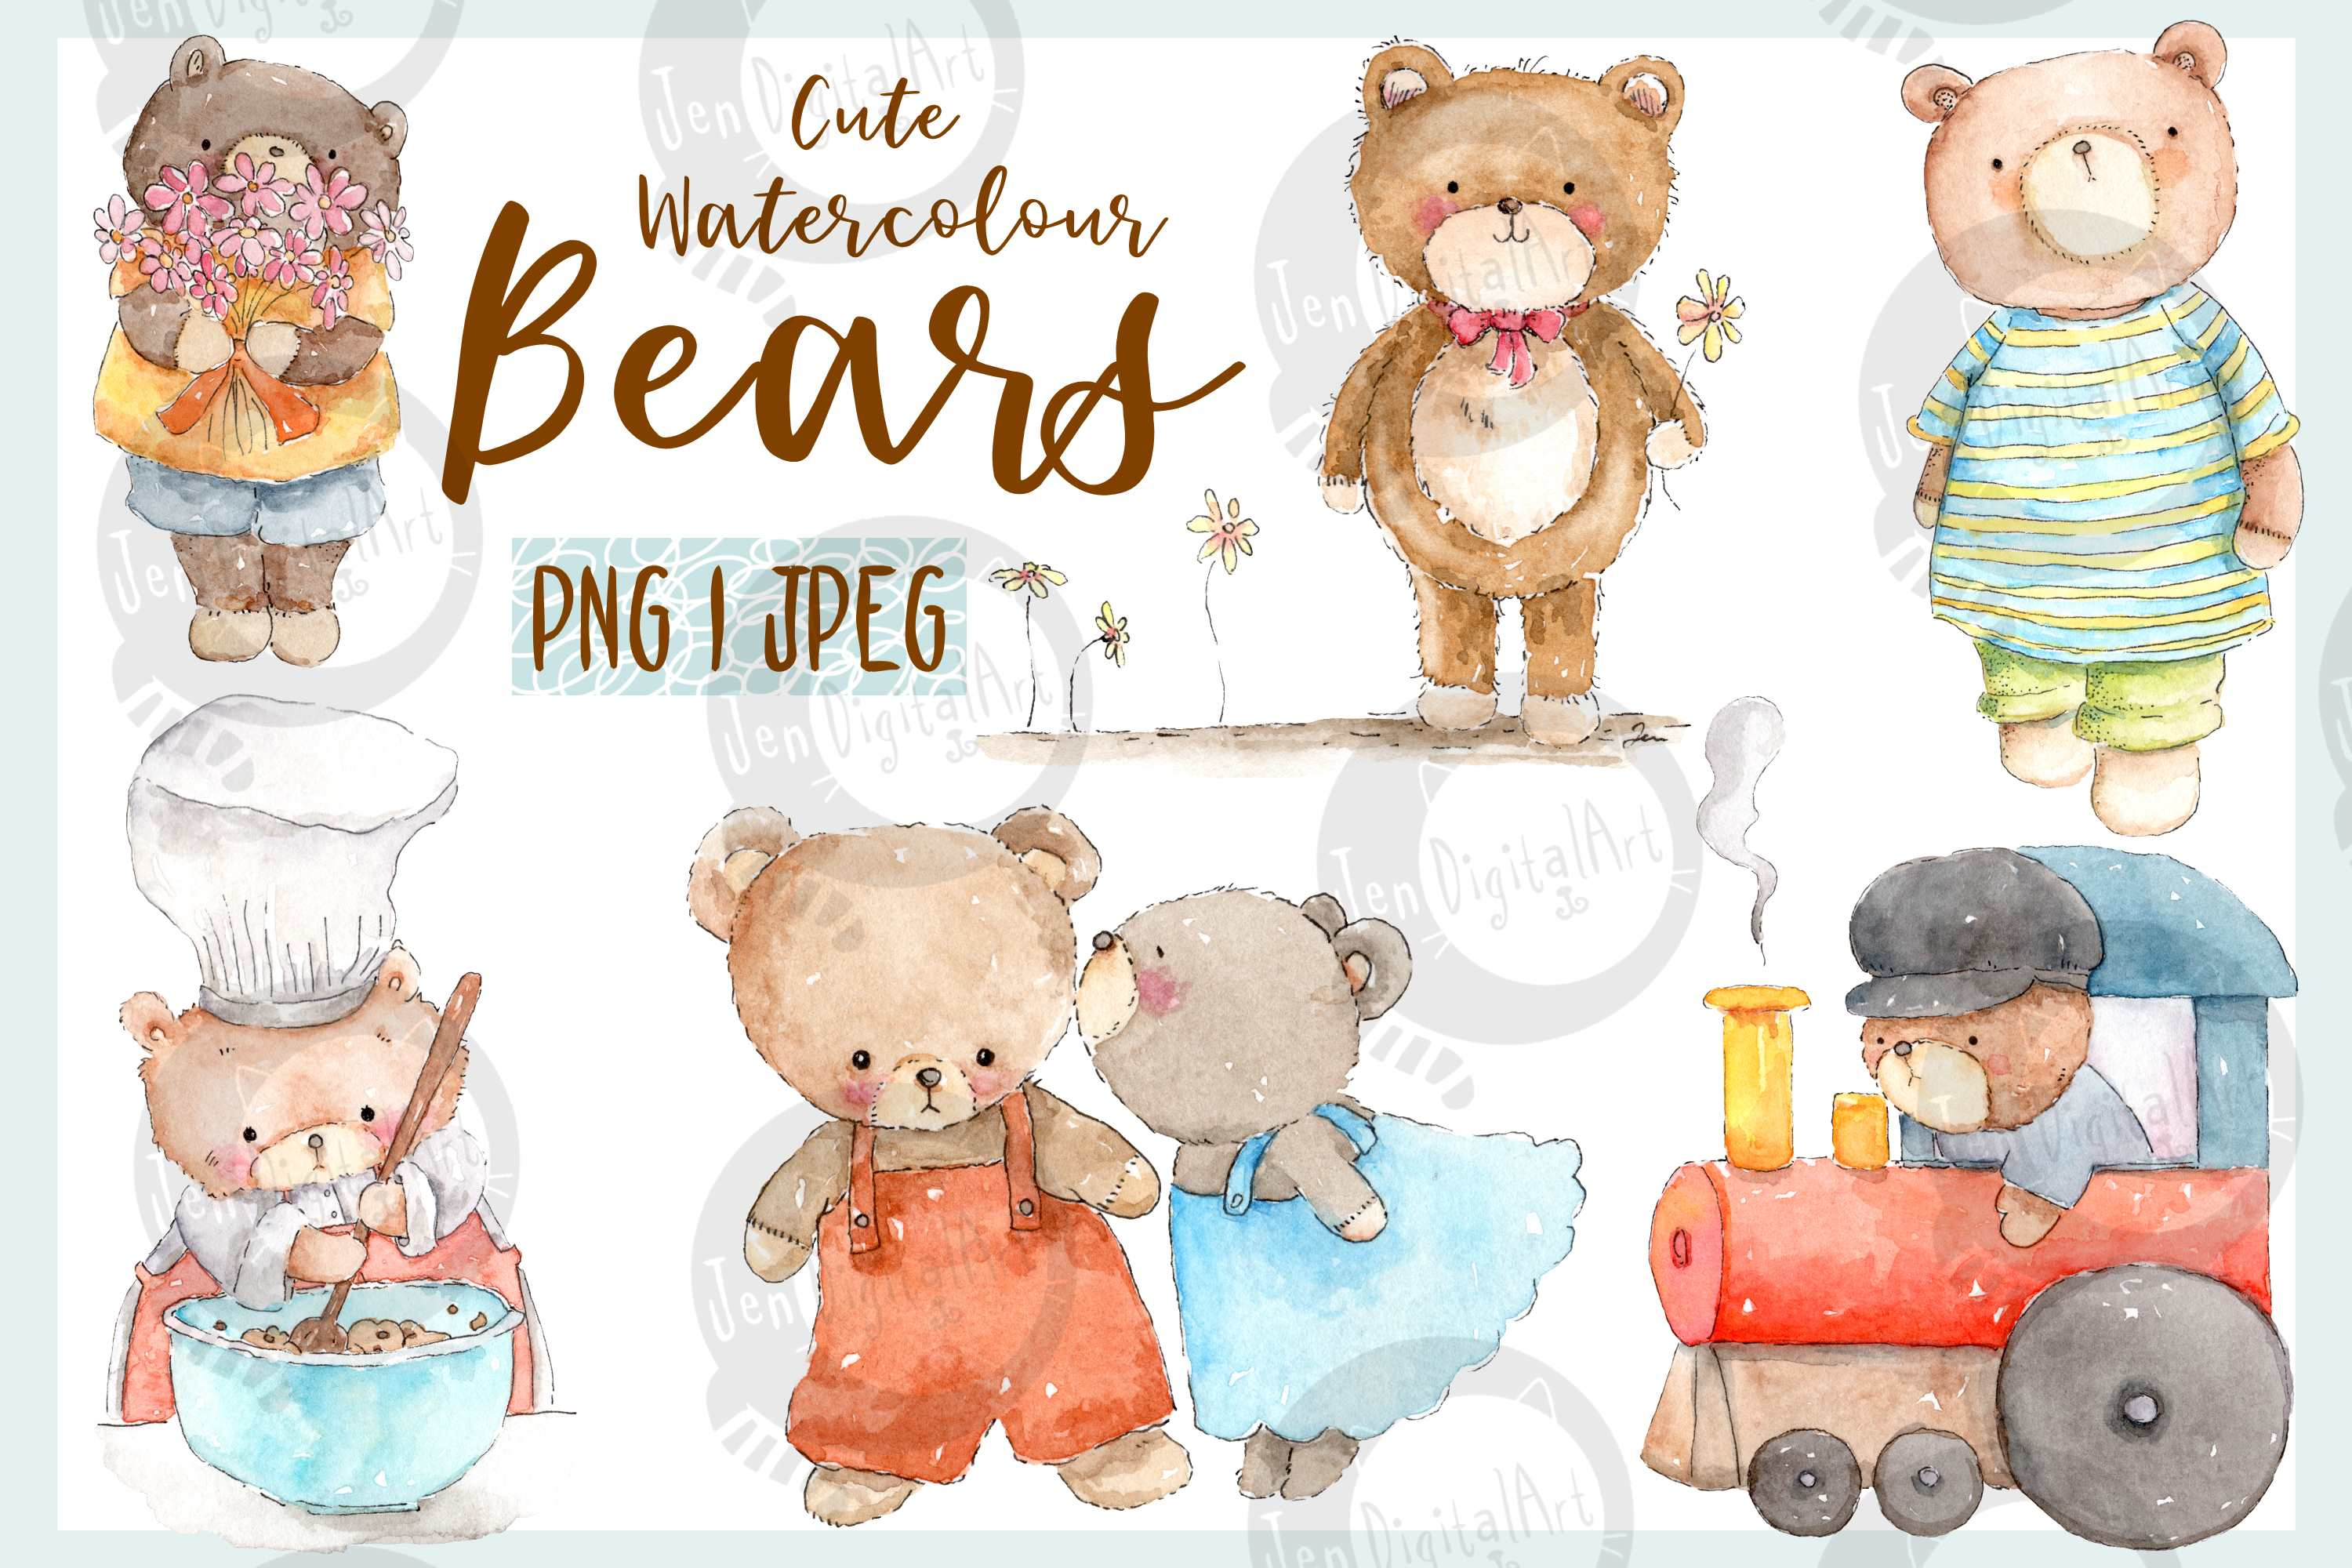 Download Free Cute Watercolor Bears Graphic By Jen Digital Art Creative Fabrica for Cricut Explore, Silhouette and other cutting machines.